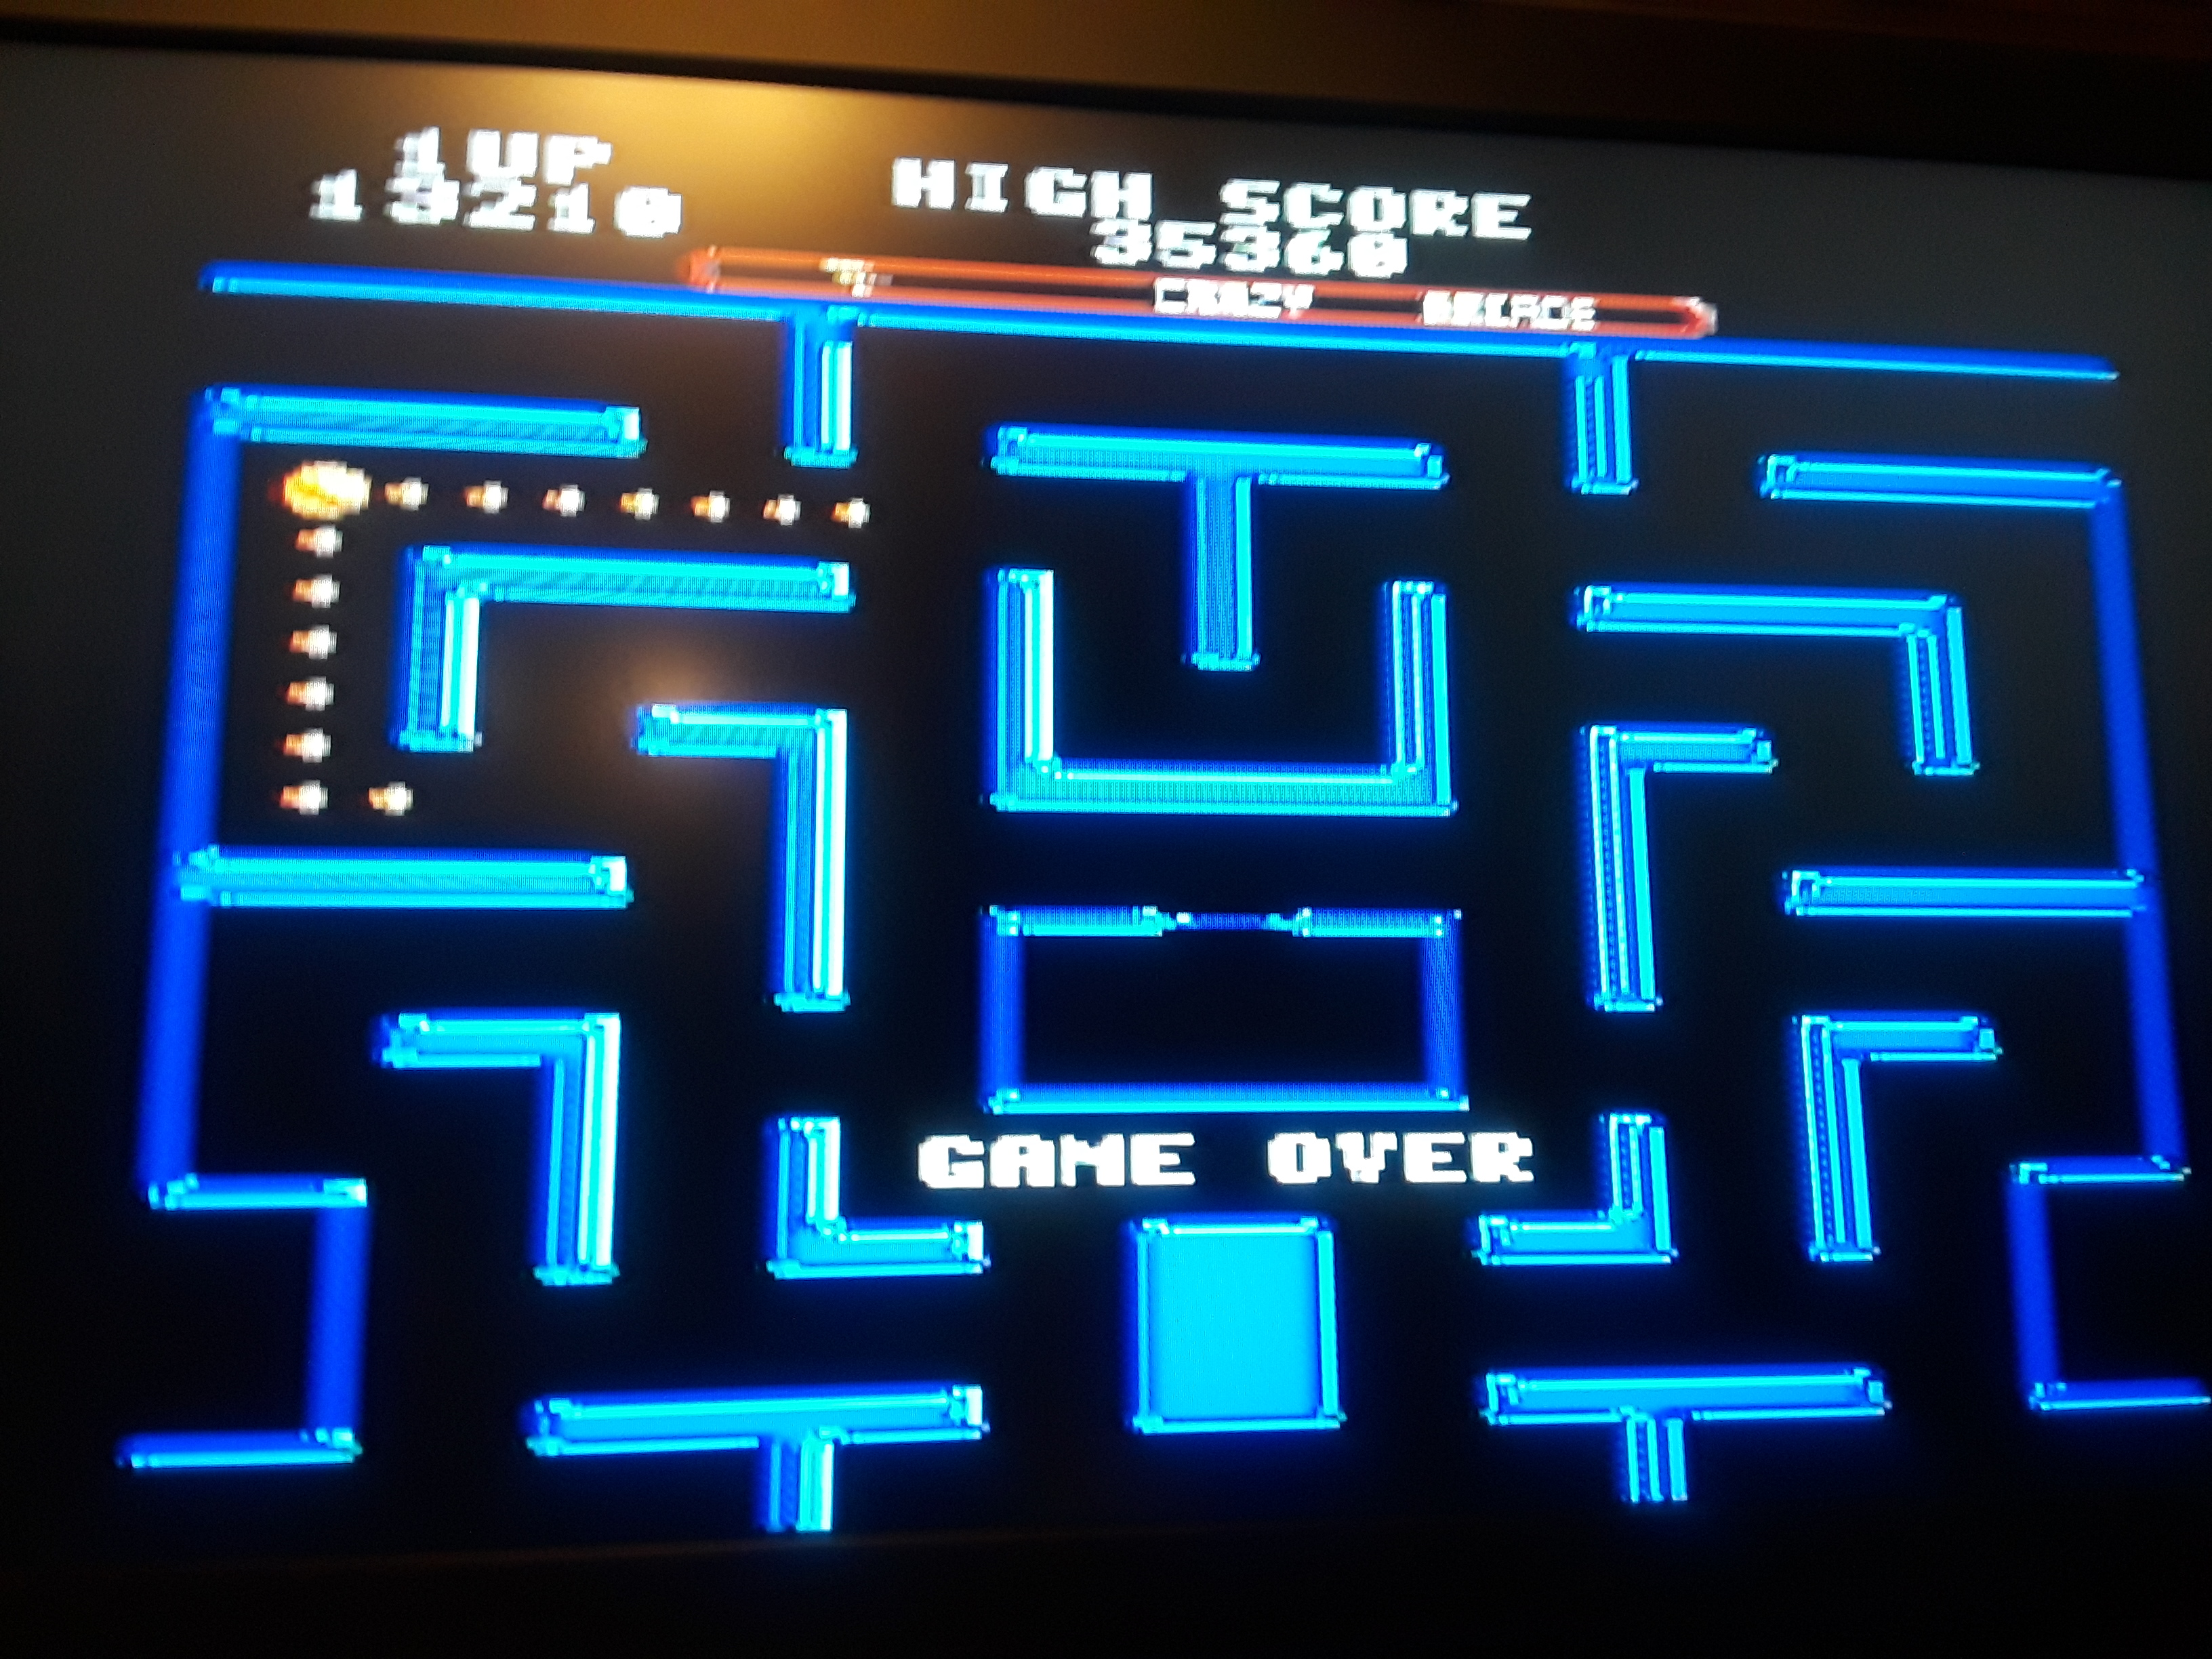 Ms. Pac-Man [On / Crazy / Arcade] 13,210 points